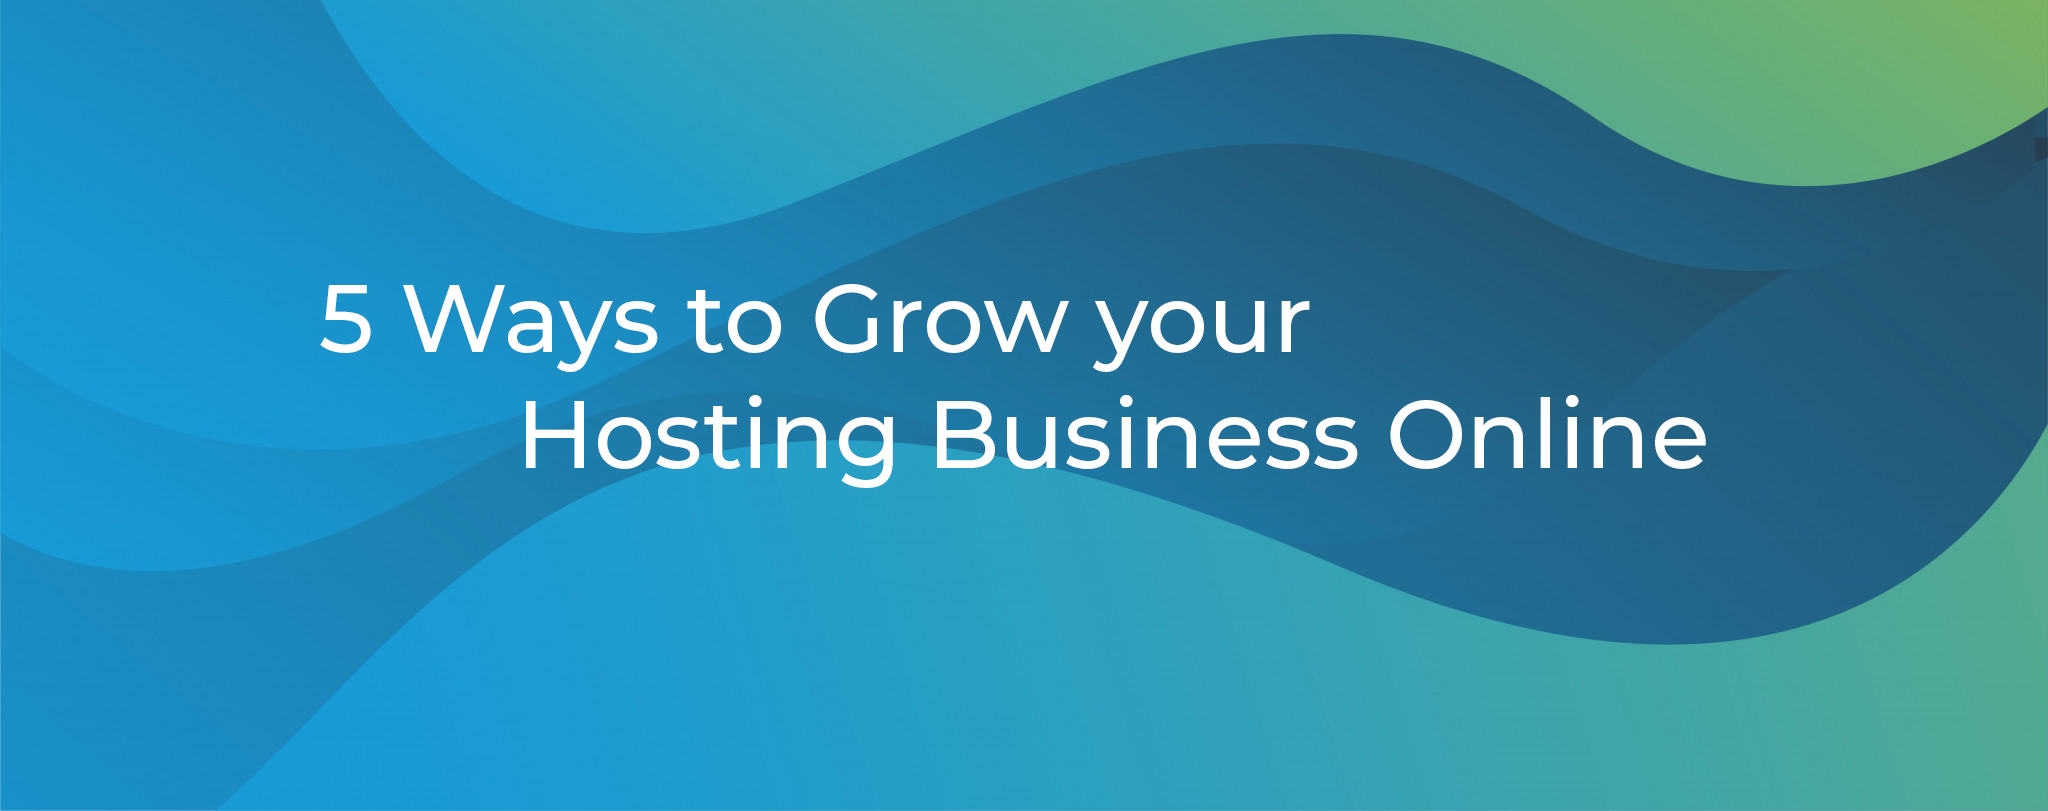 Five Ways to grow your Hosting Business Online